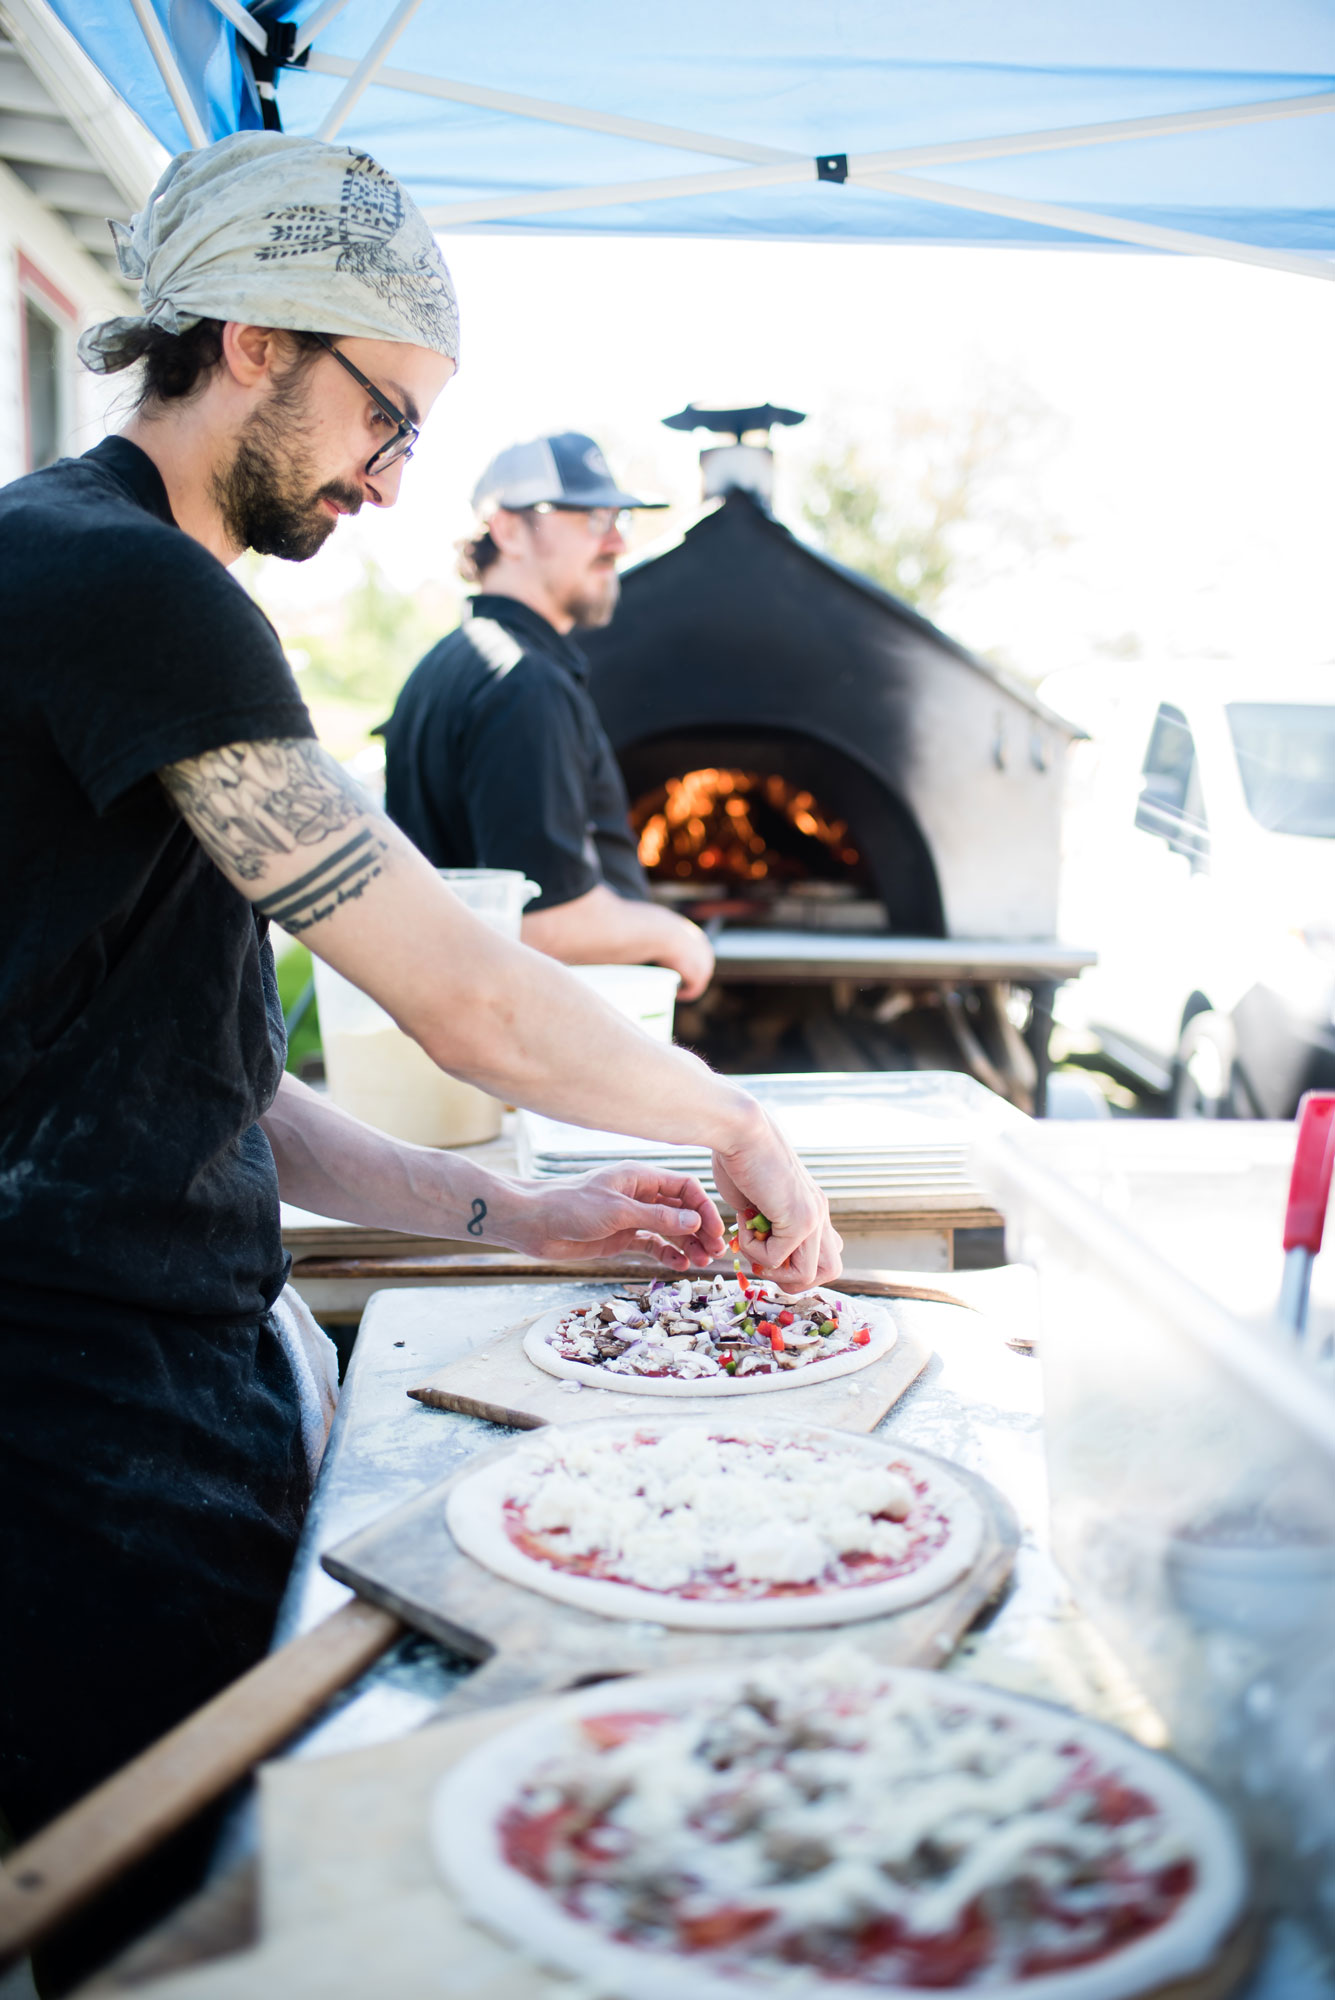 Mobile Wood-Fired Pizzas | Flat Rock NC Catering